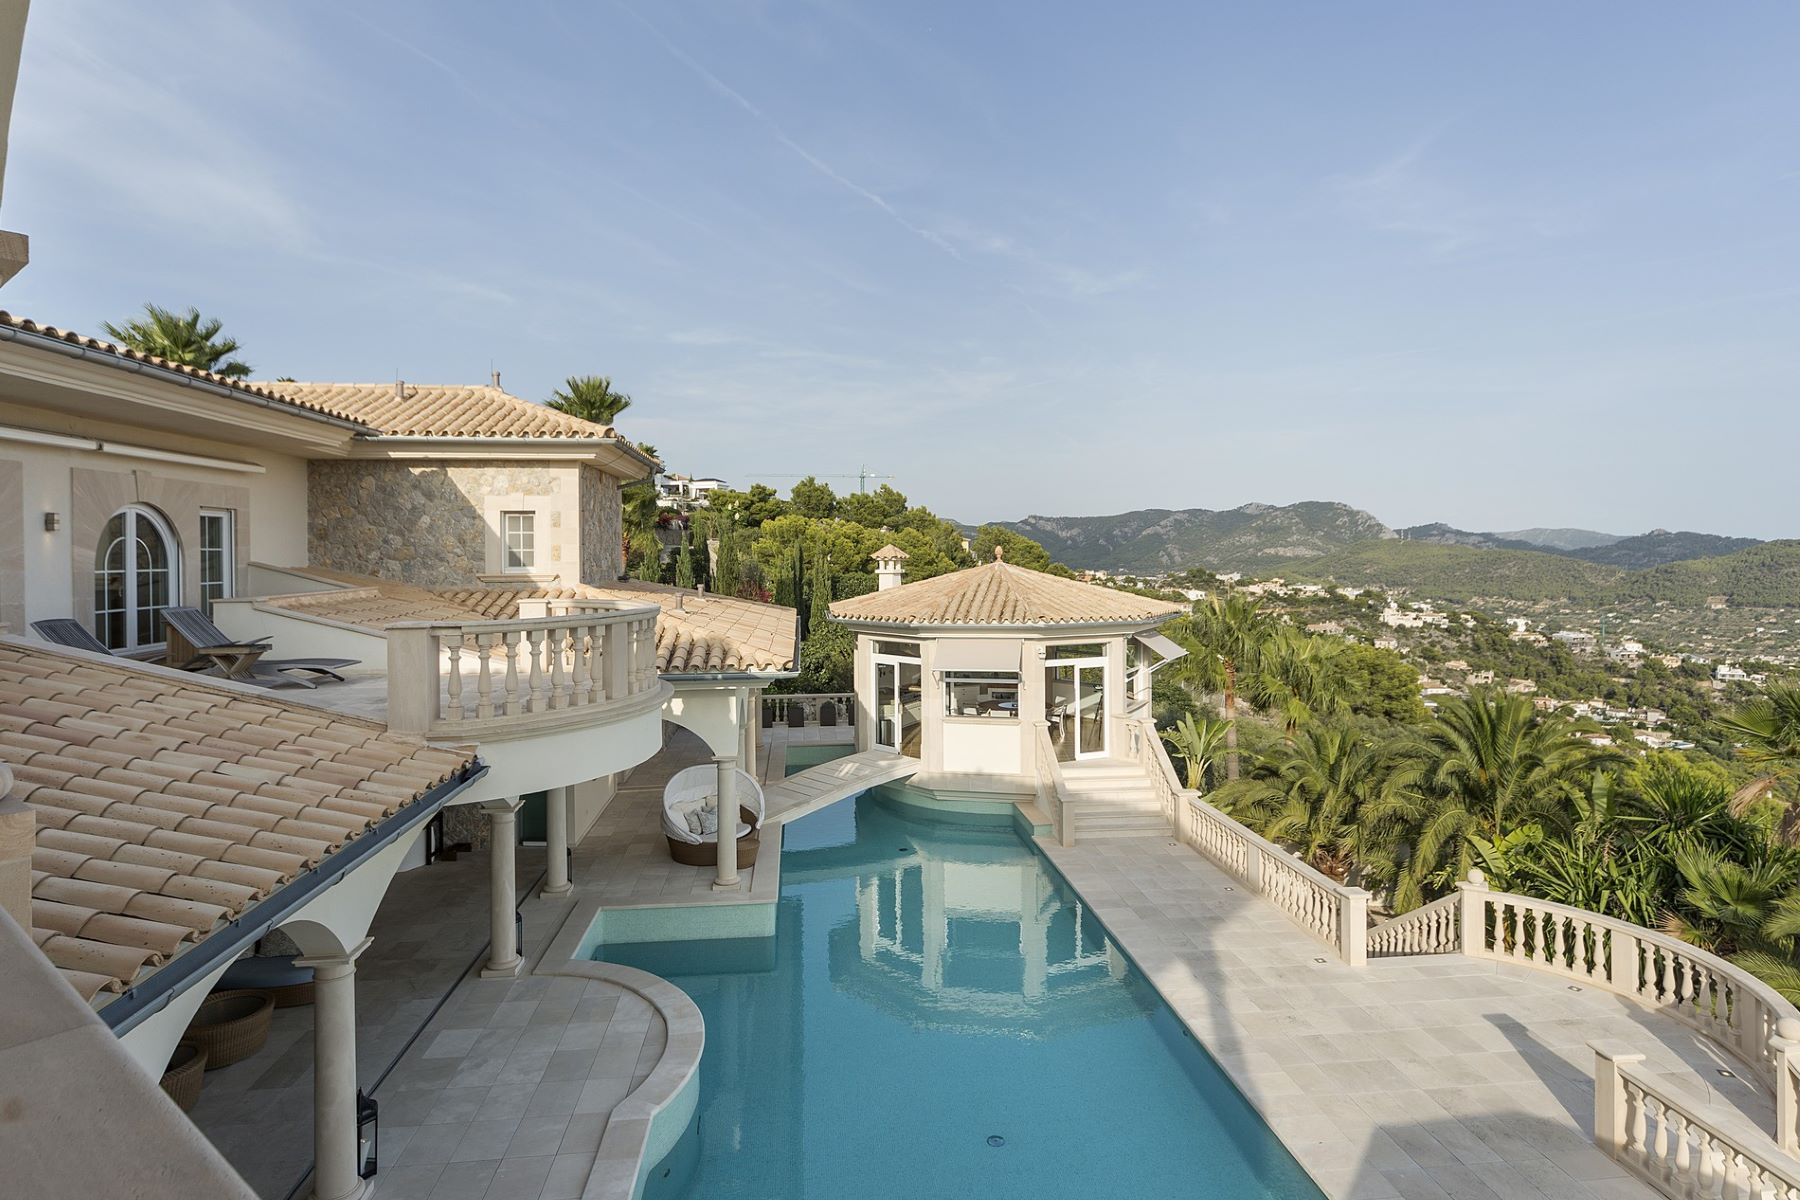 Single Family Home for Sale at Impressive mansion in a unique setting Other Balearic Islands, Balearic Islands, Spain